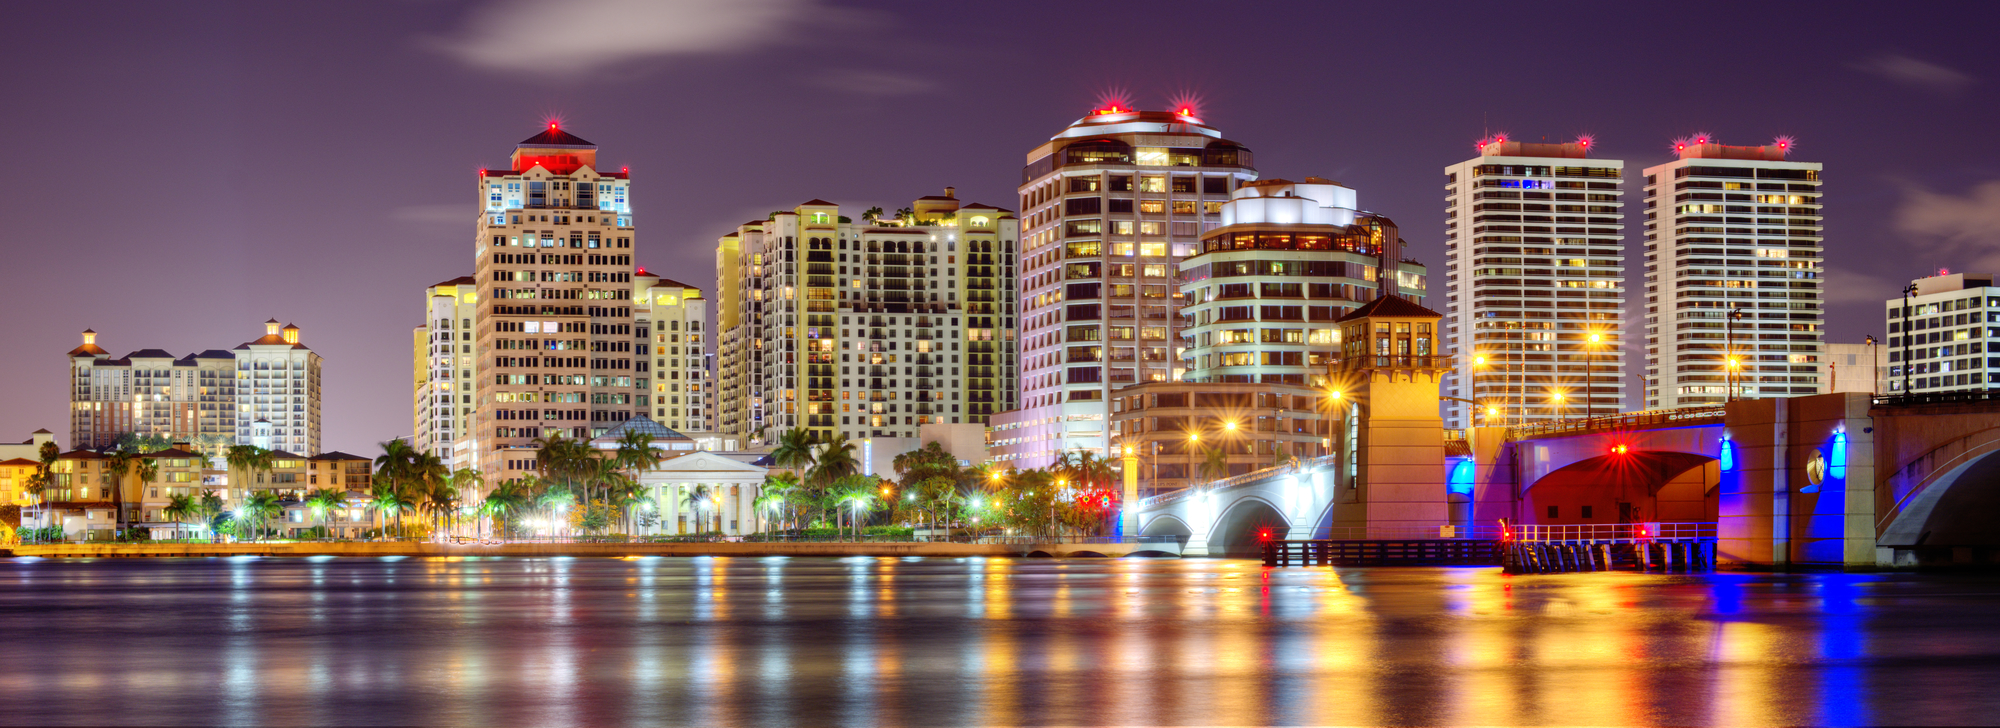 Where are the best new homes in west palm beach florida?